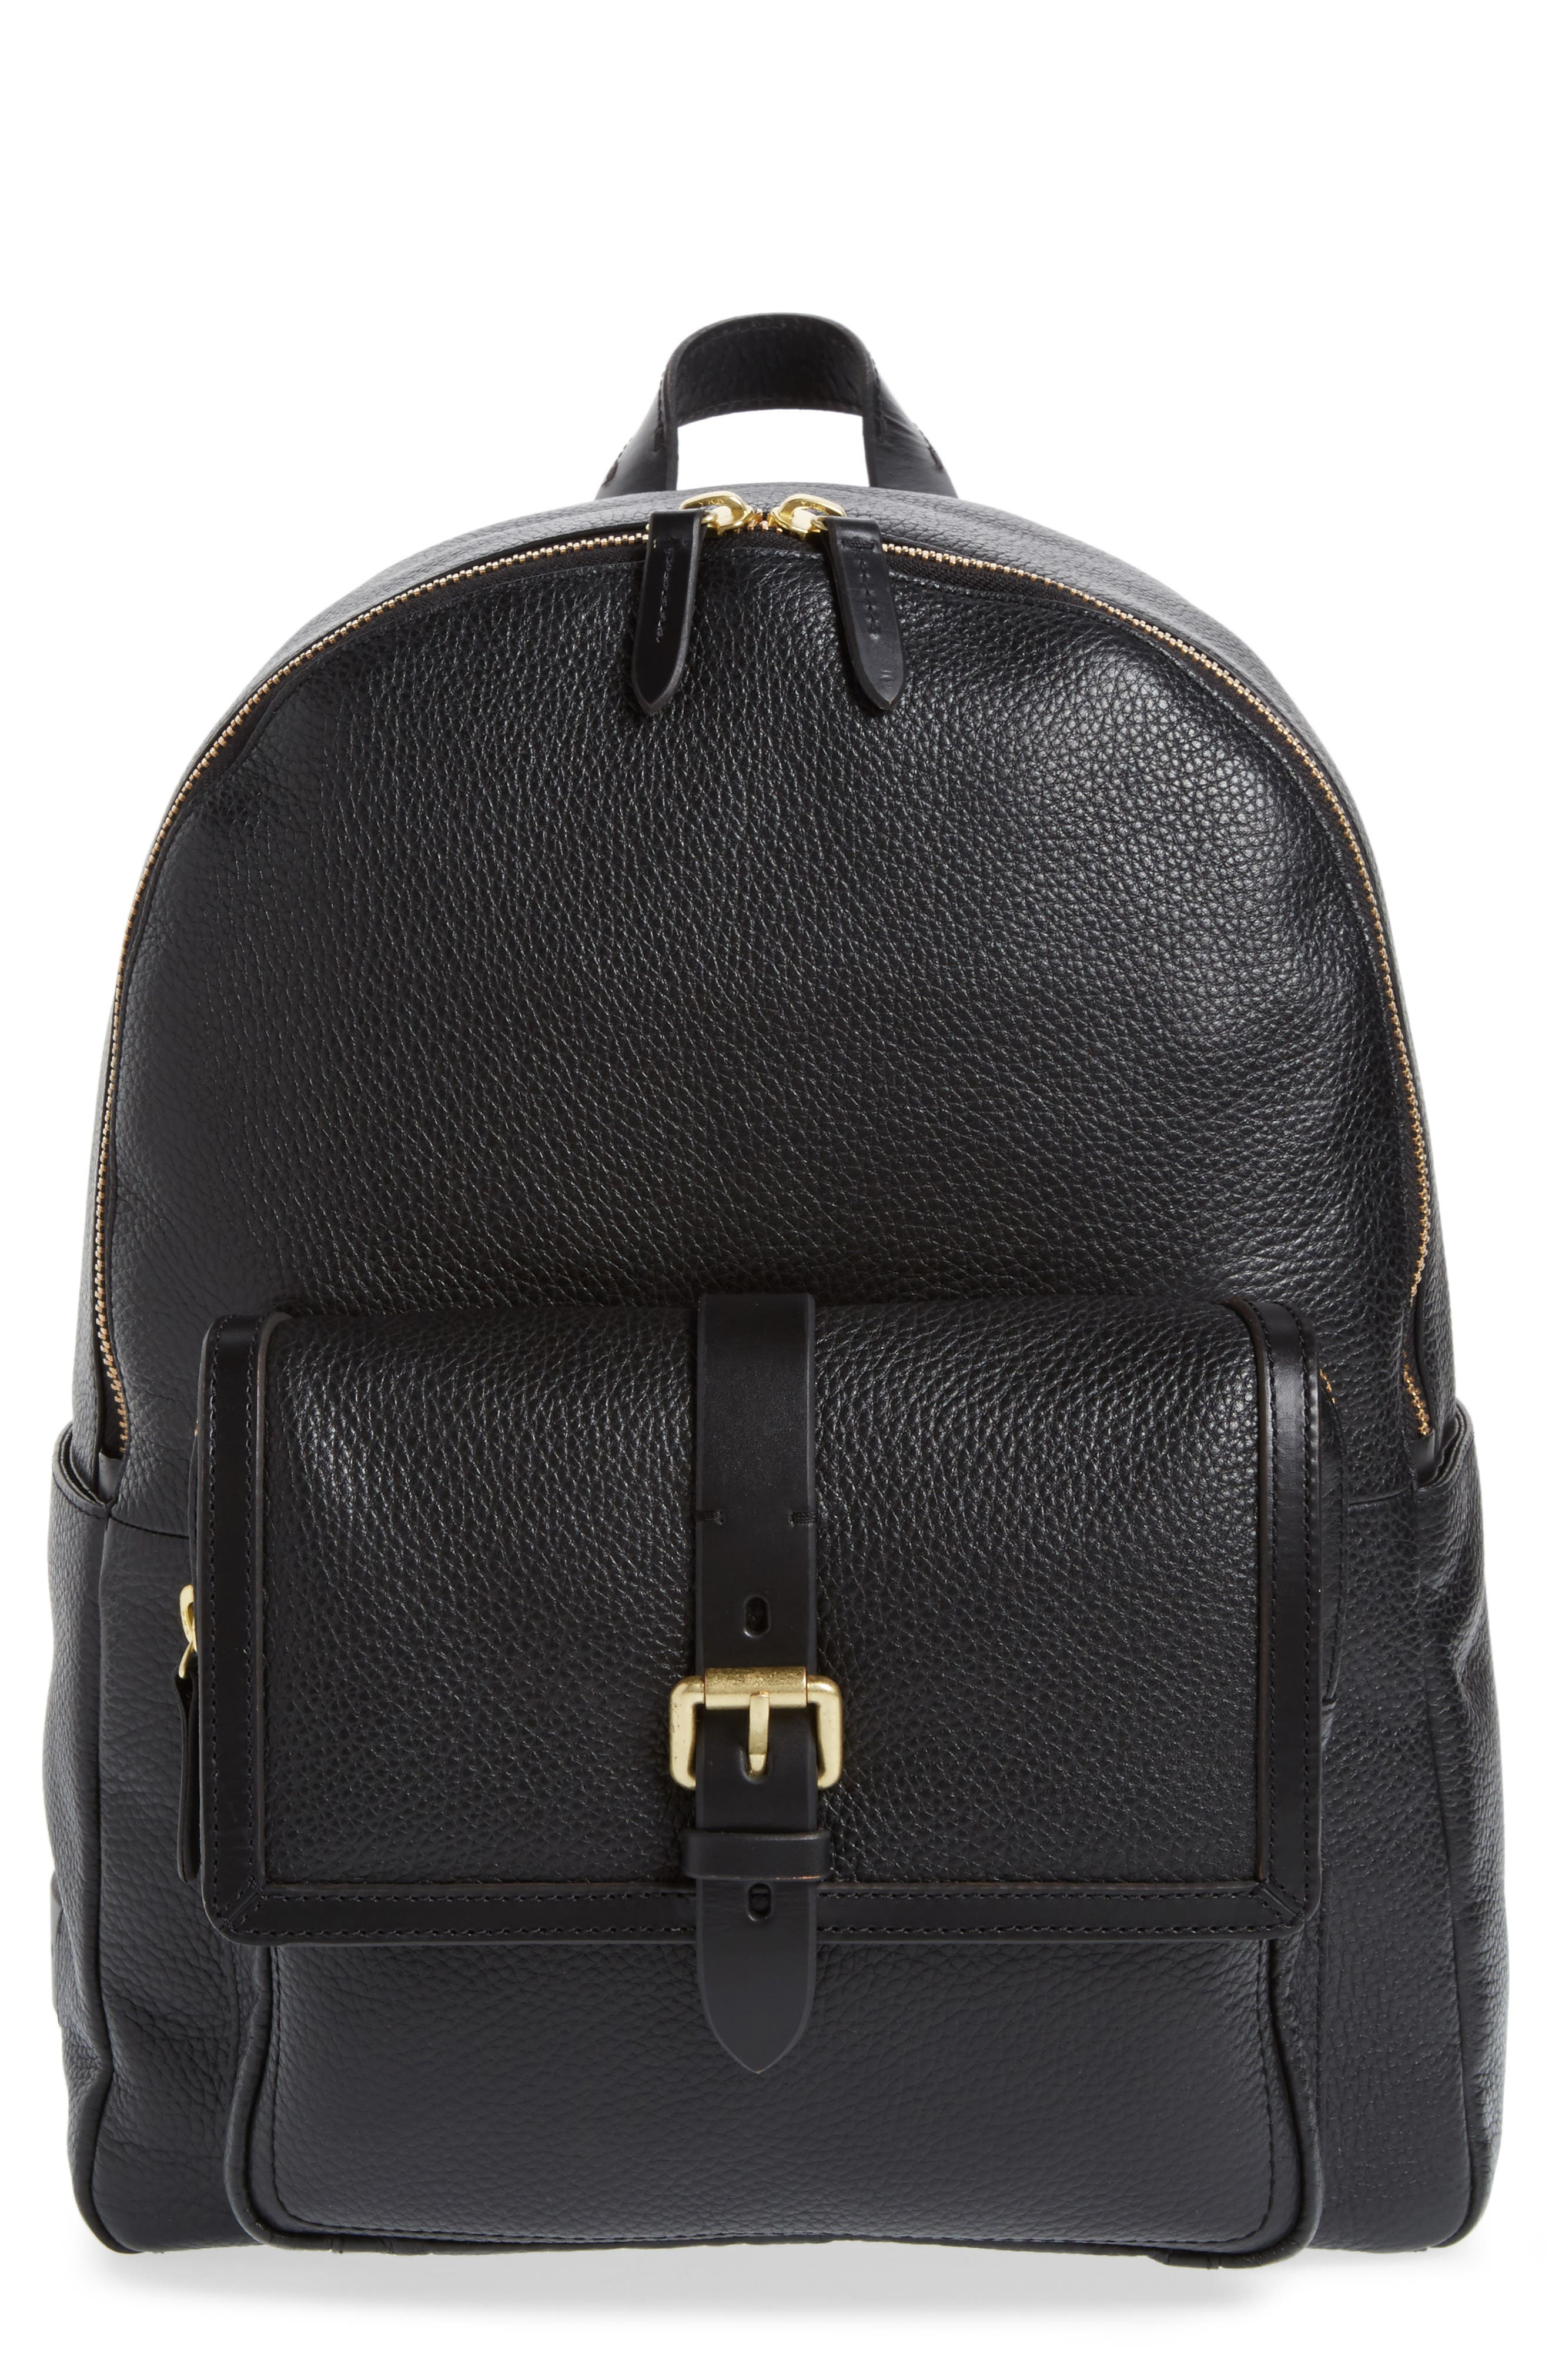 Brayton Leather Backpack,                         Main,                         color, 001